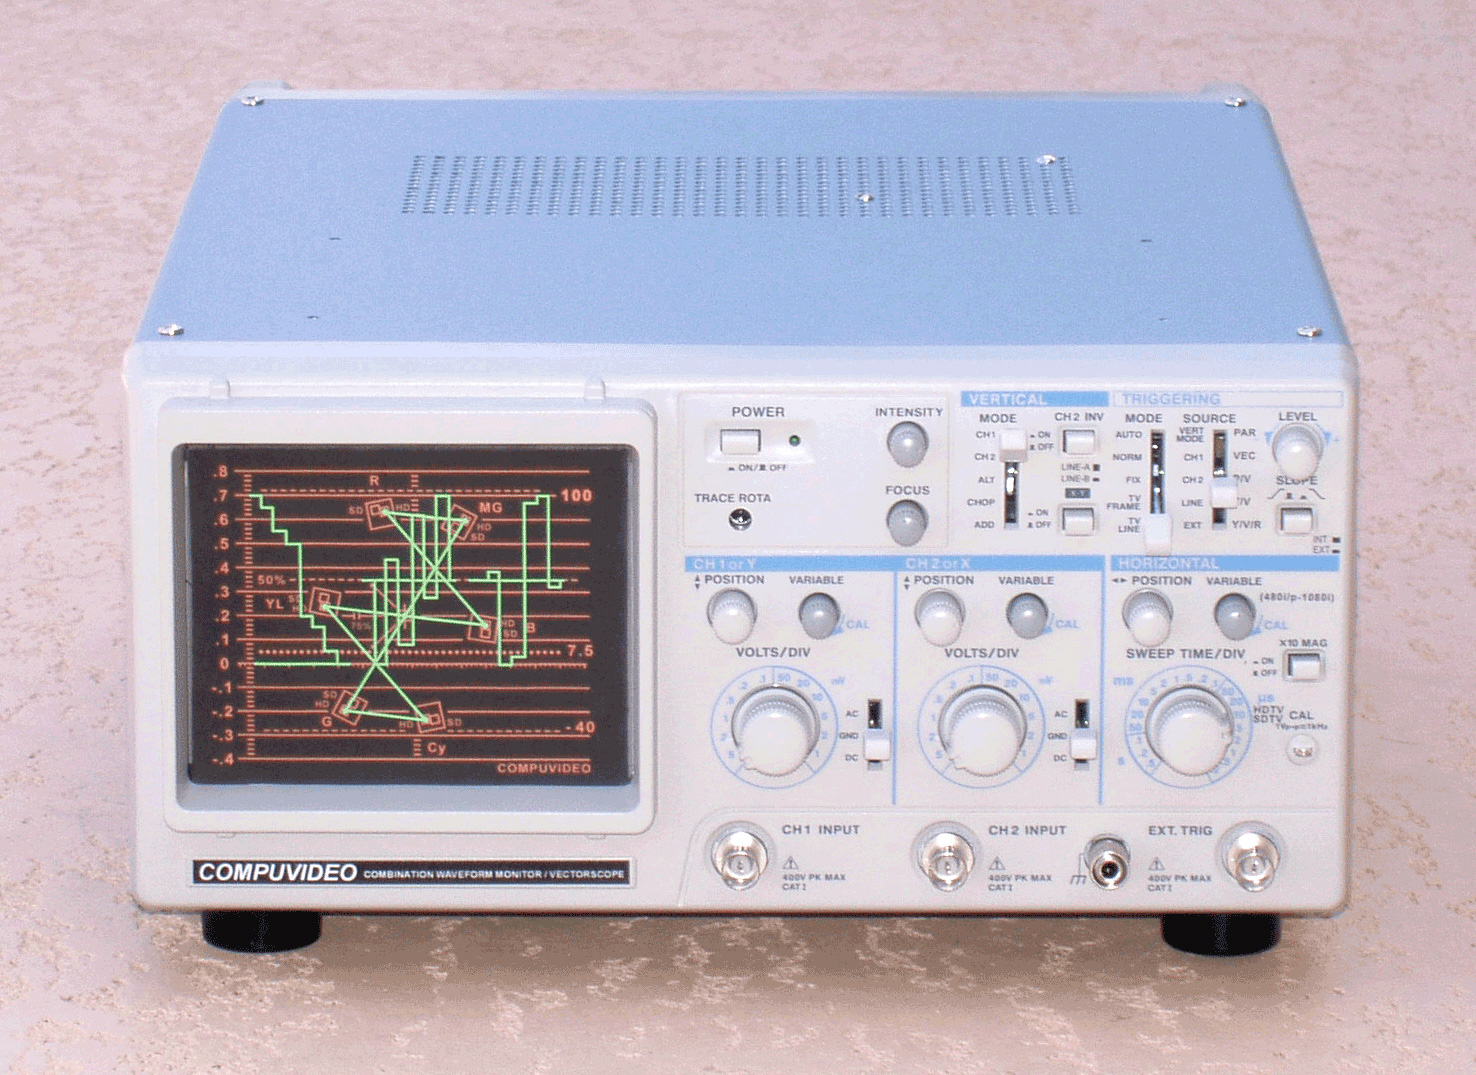 Compuvideo Digital/Analog Waveform Monitor SVR-1100SDI